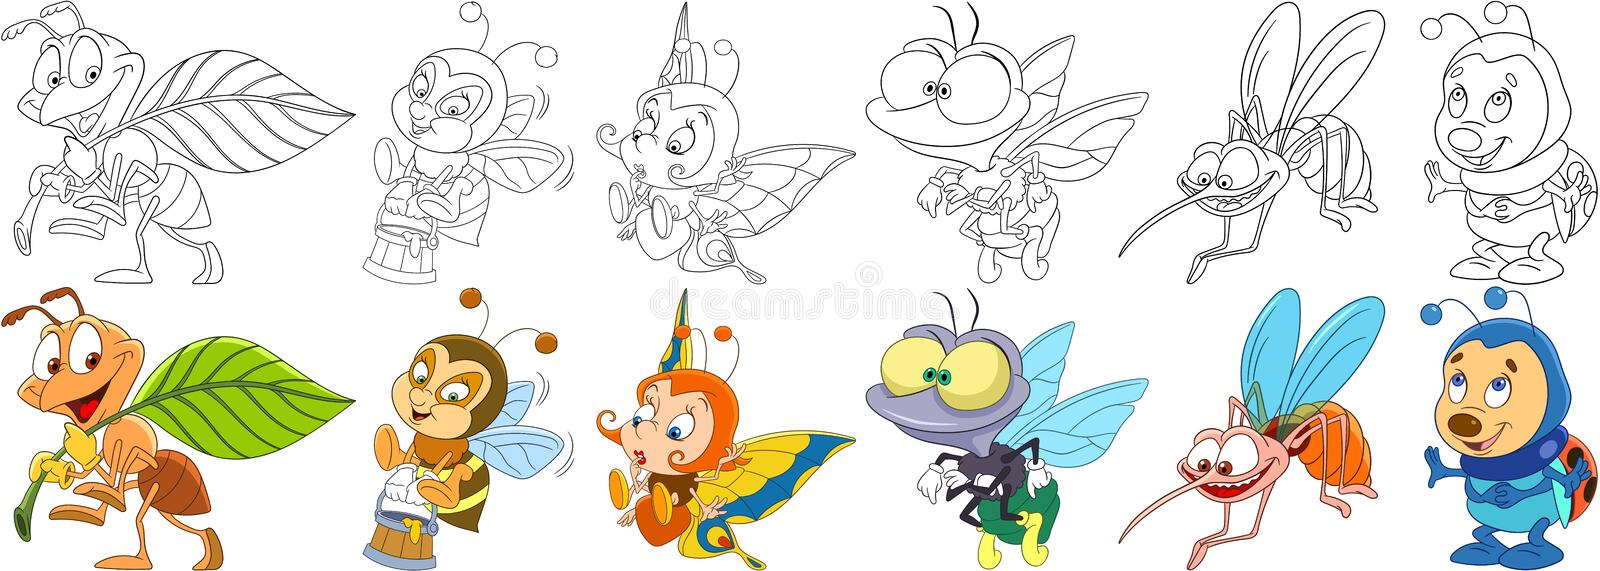 Cartoon insects set royalty free illustration